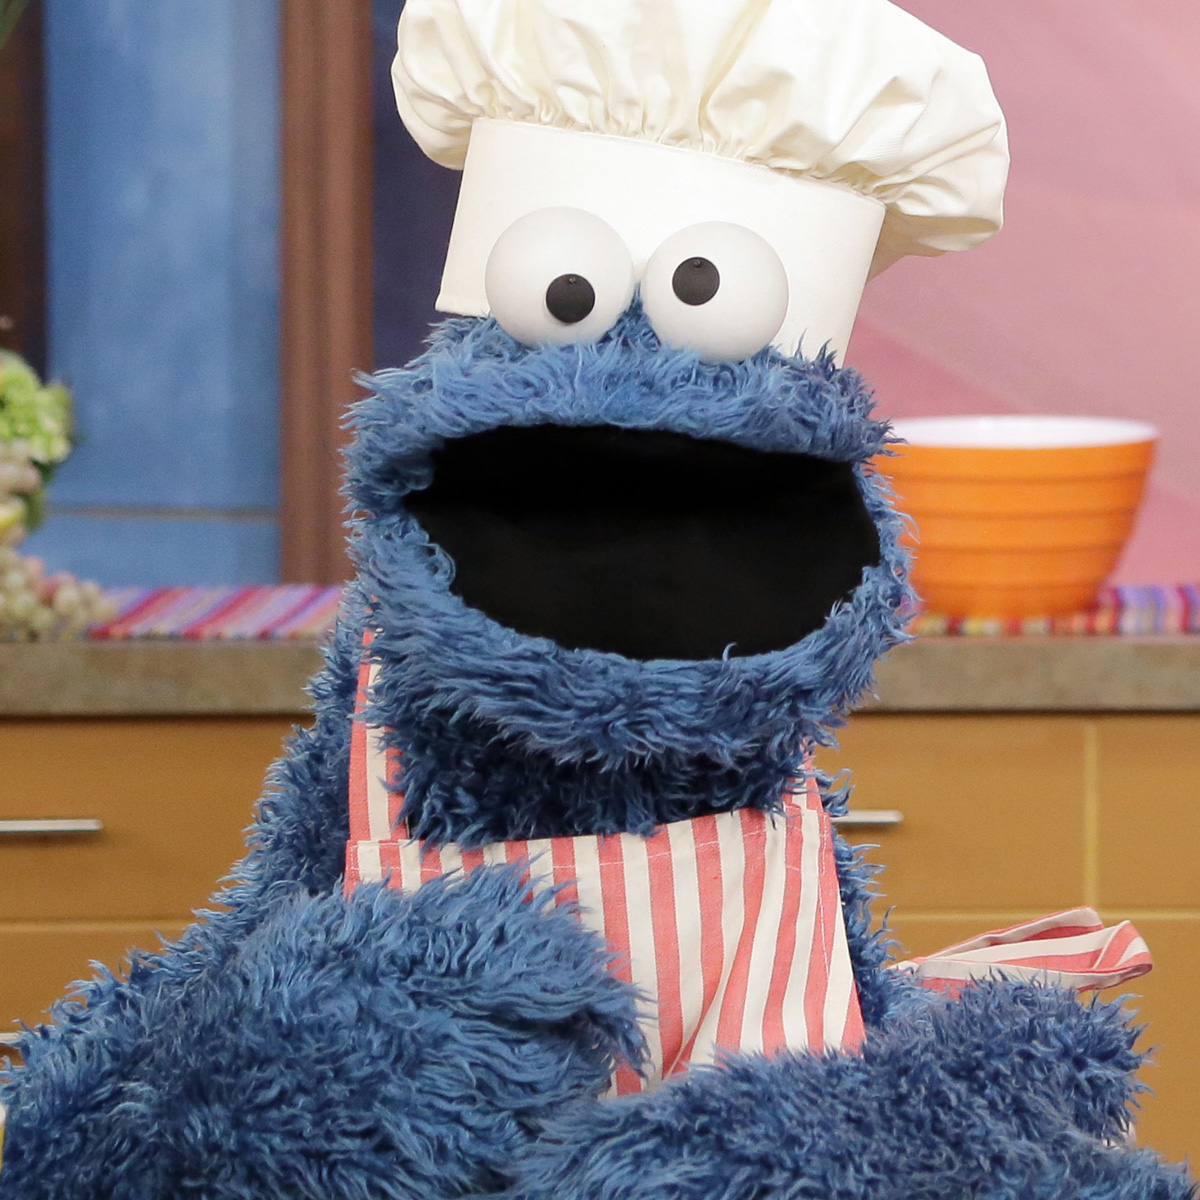 How to Make a Char-cookie-rie Board, According to Cookie Monster